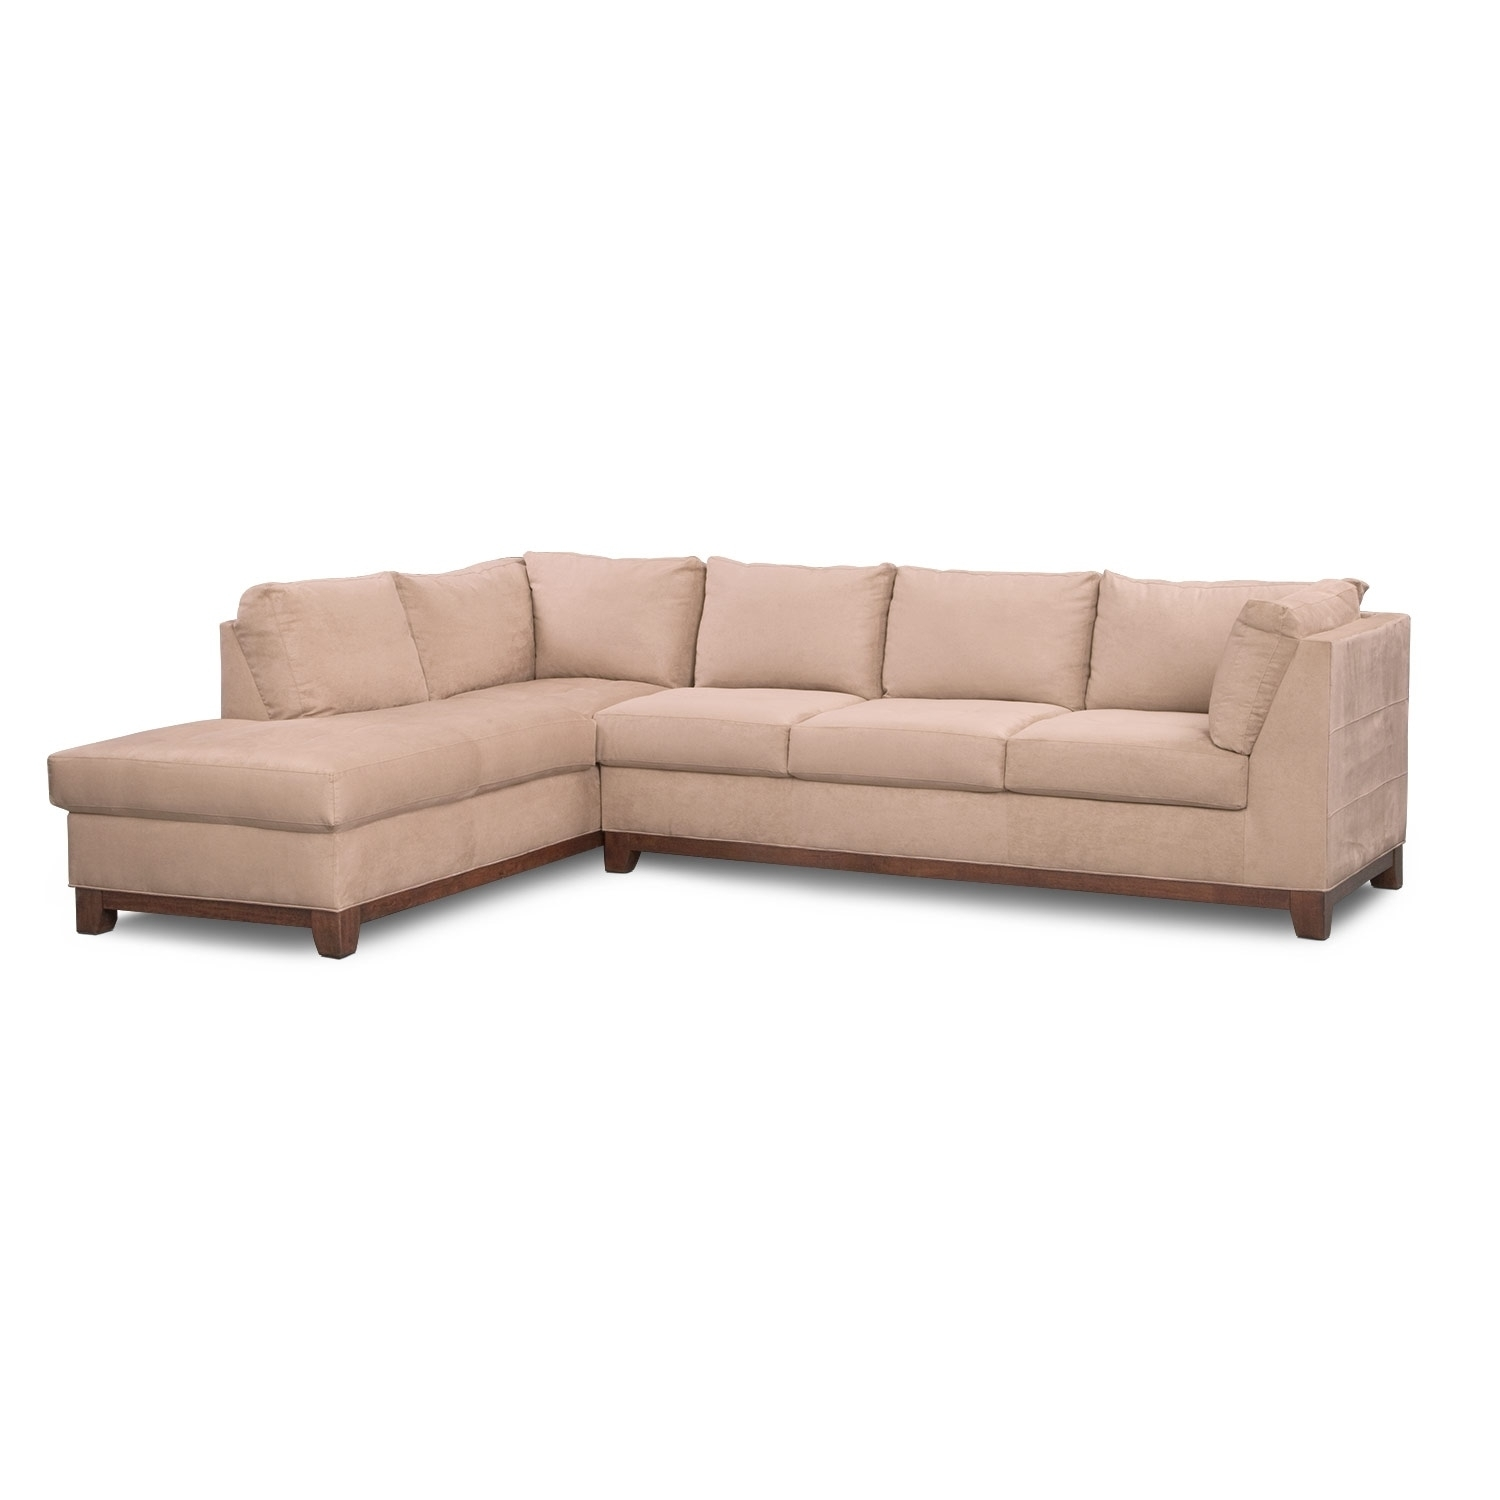 Soho 2 Piece Sectional With Left Facing Chaise – Cobblestone | Value Regarding Arrowmask 2 Piece Sectionals With Sleeper & Left Facing Chaise (Image 22 of 25)